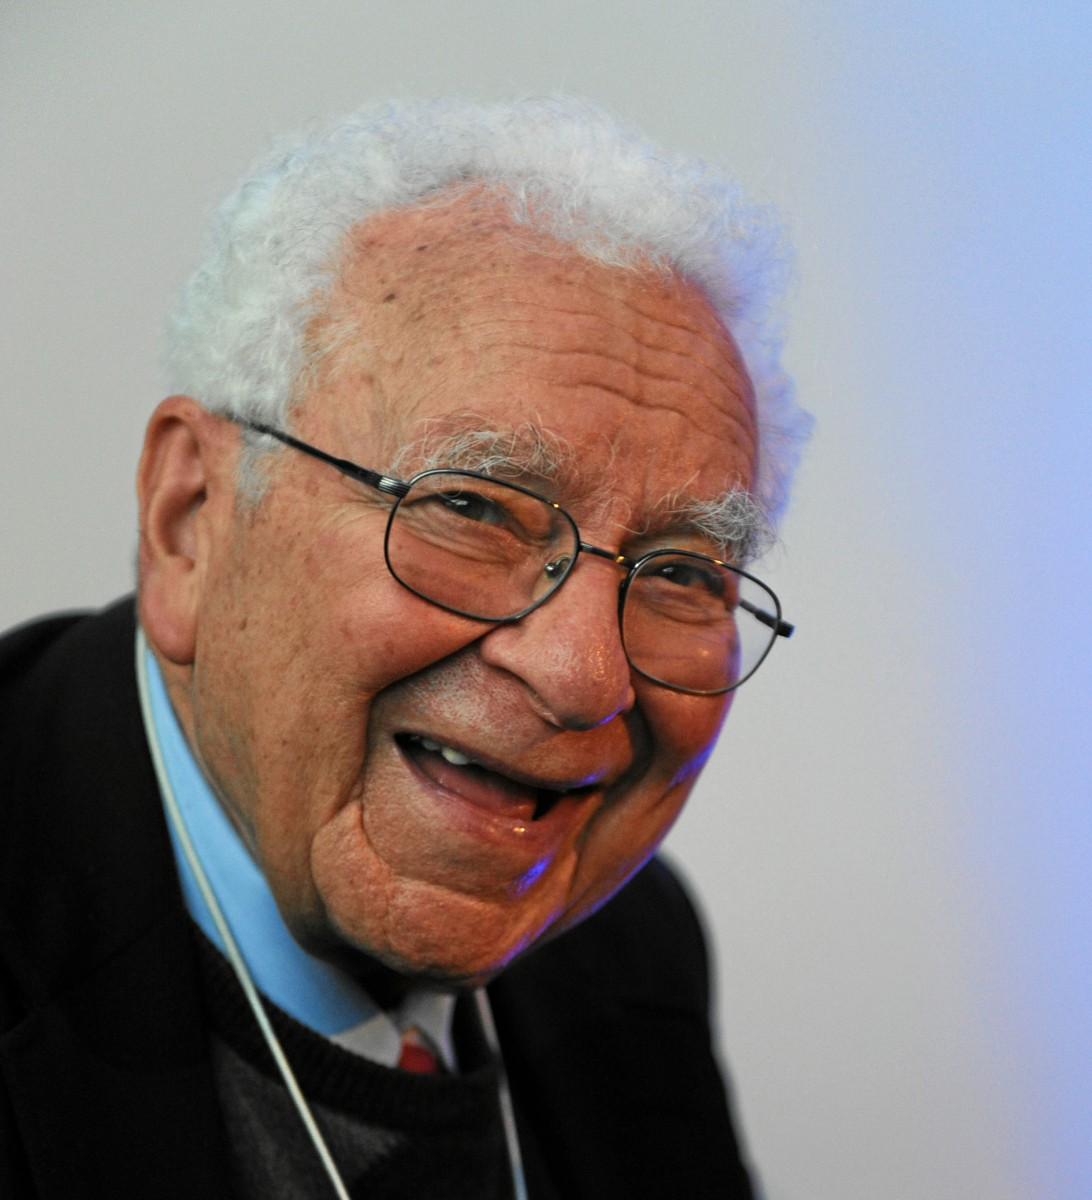 Murray Gell-Mann's quote #3